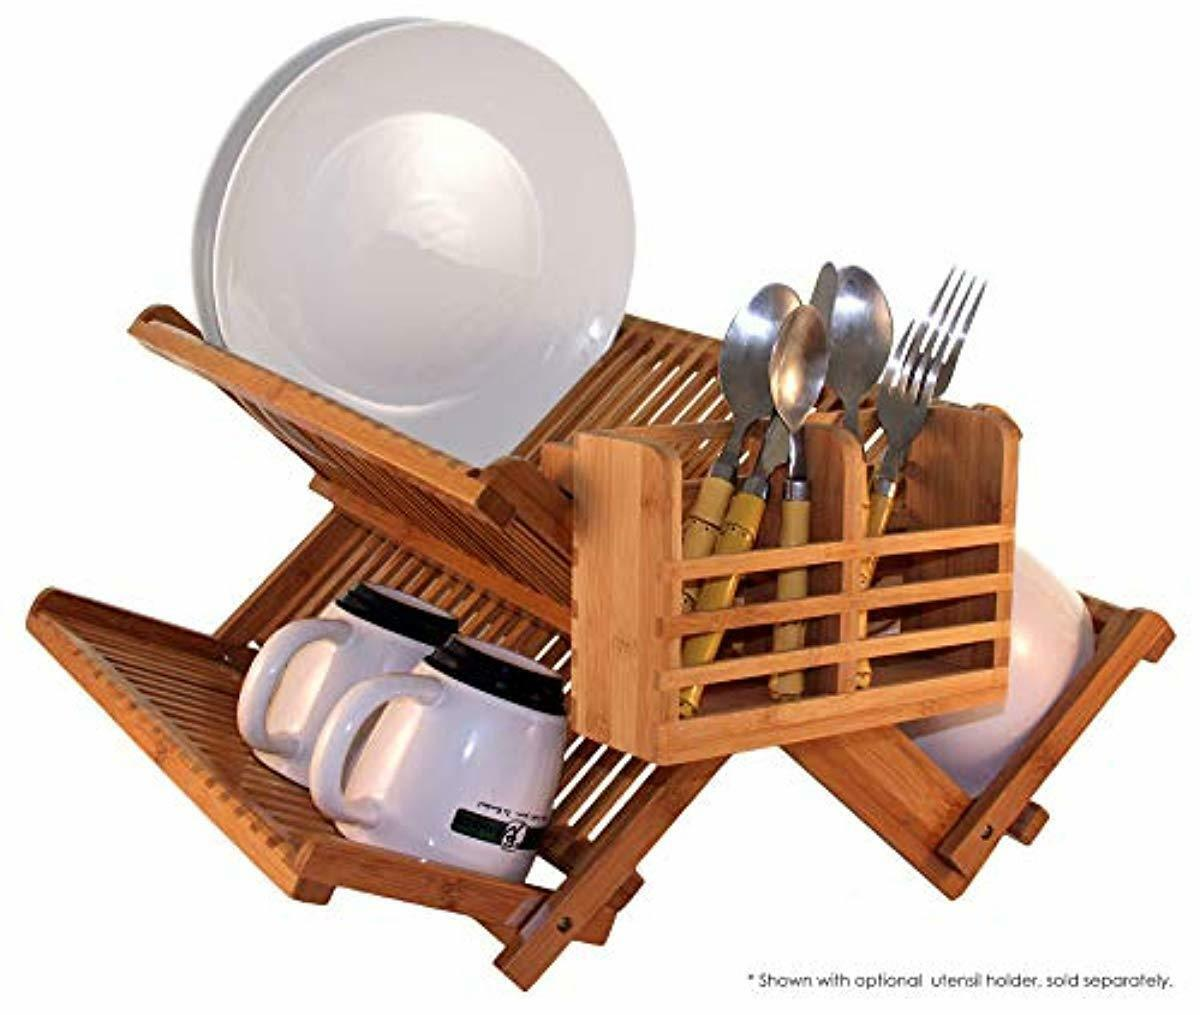 Totally Bamboo 20-6701 Dish Drying Rack, Brown